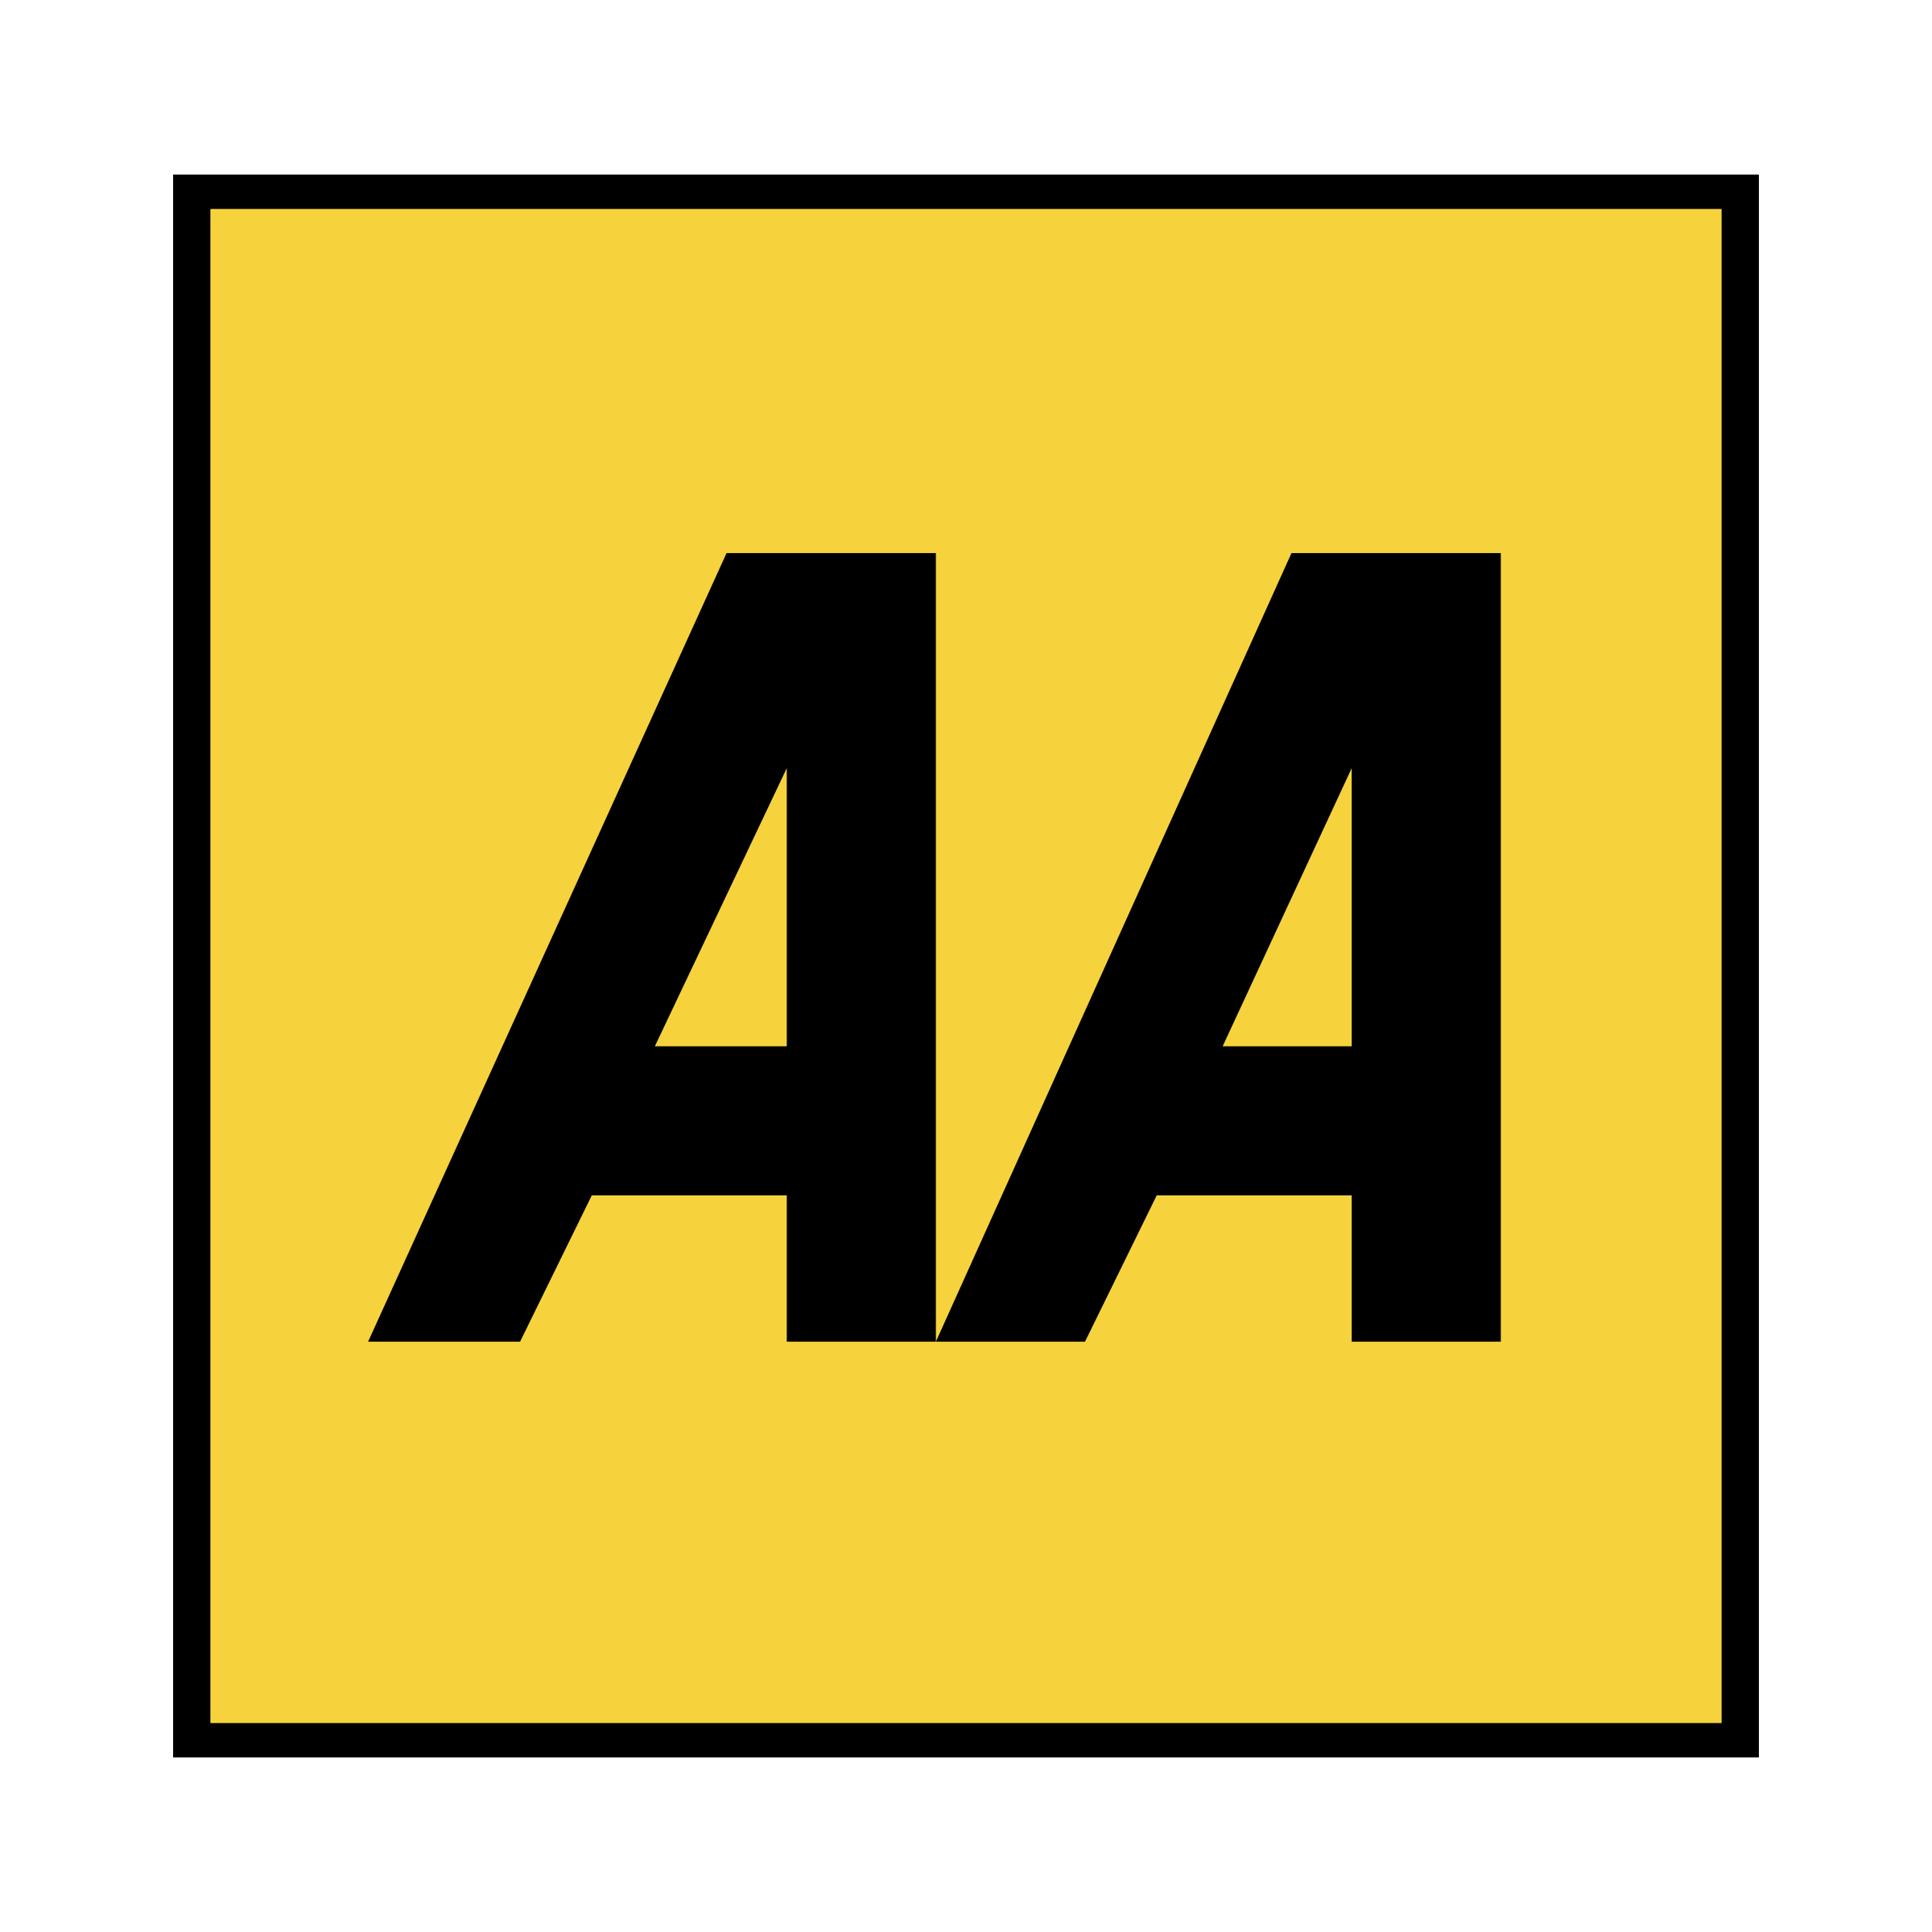 fully AA cover